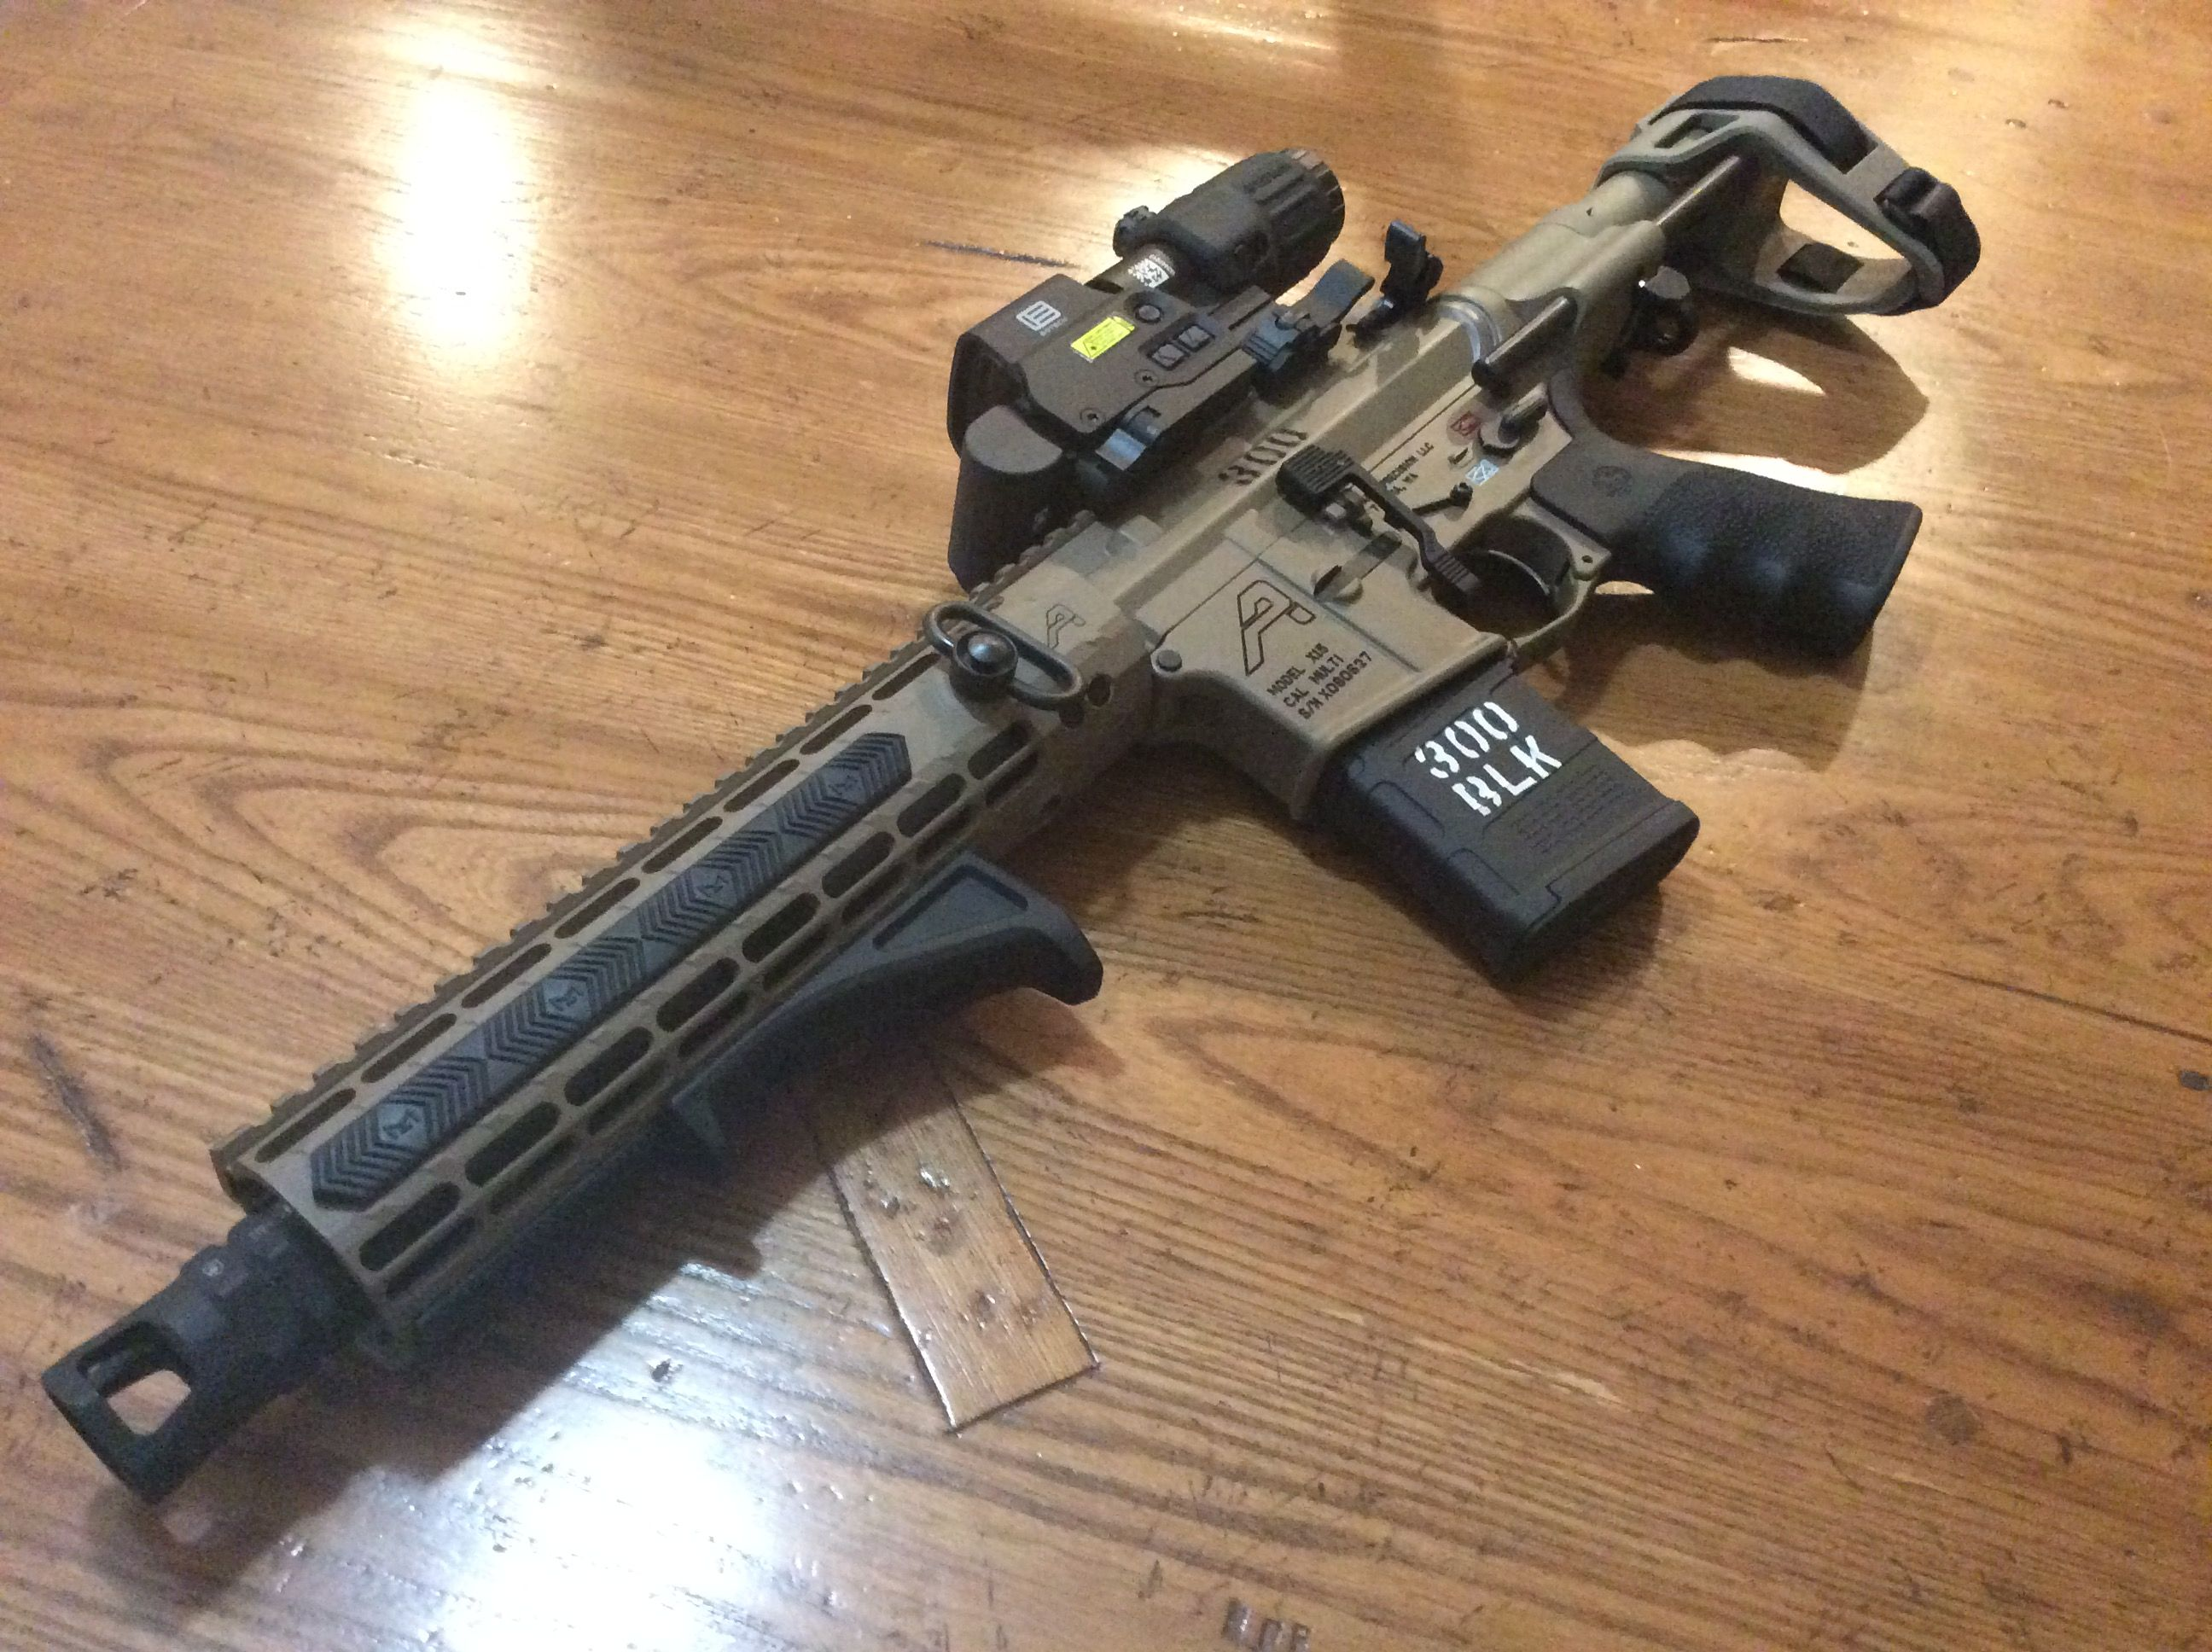 300 Blackout Pistol Aero Precision Upper And Lower With 10 3